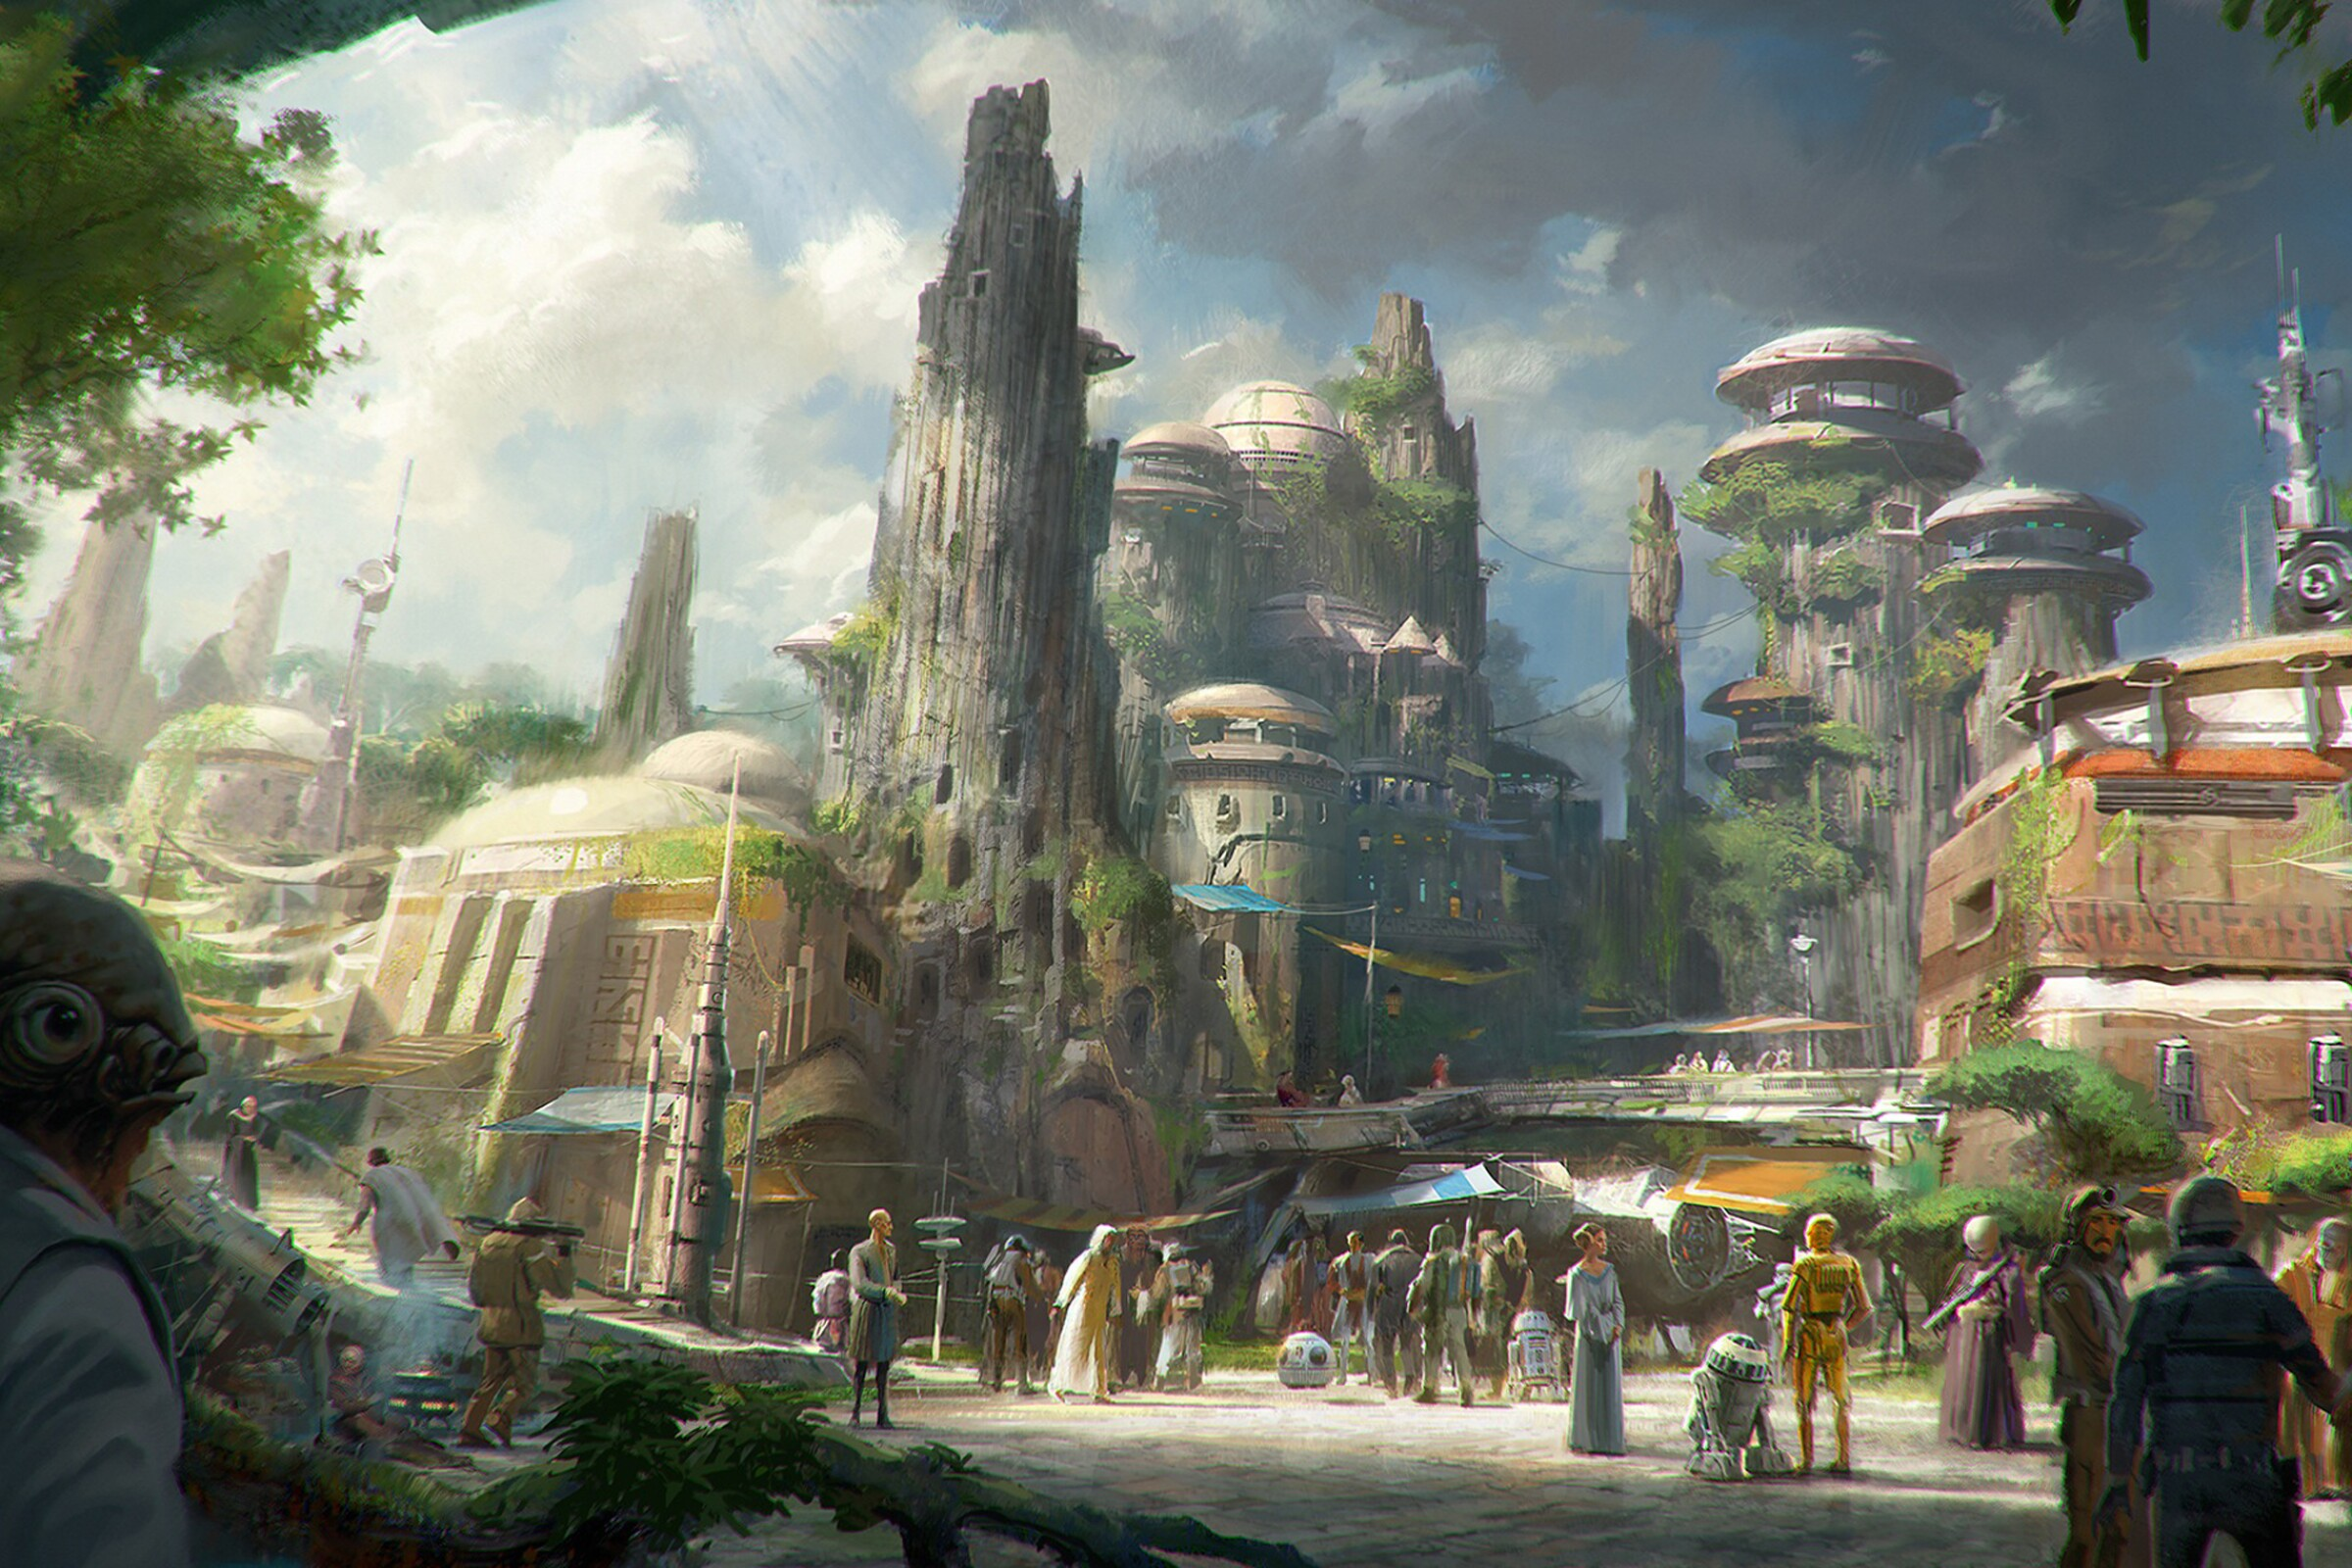 Star Wars: Galaxy's Edge will open May 31 at Disneyland Park in Anaheim. The 14-acre attraction is Disneyland's largest-ever single-themed land expansion.